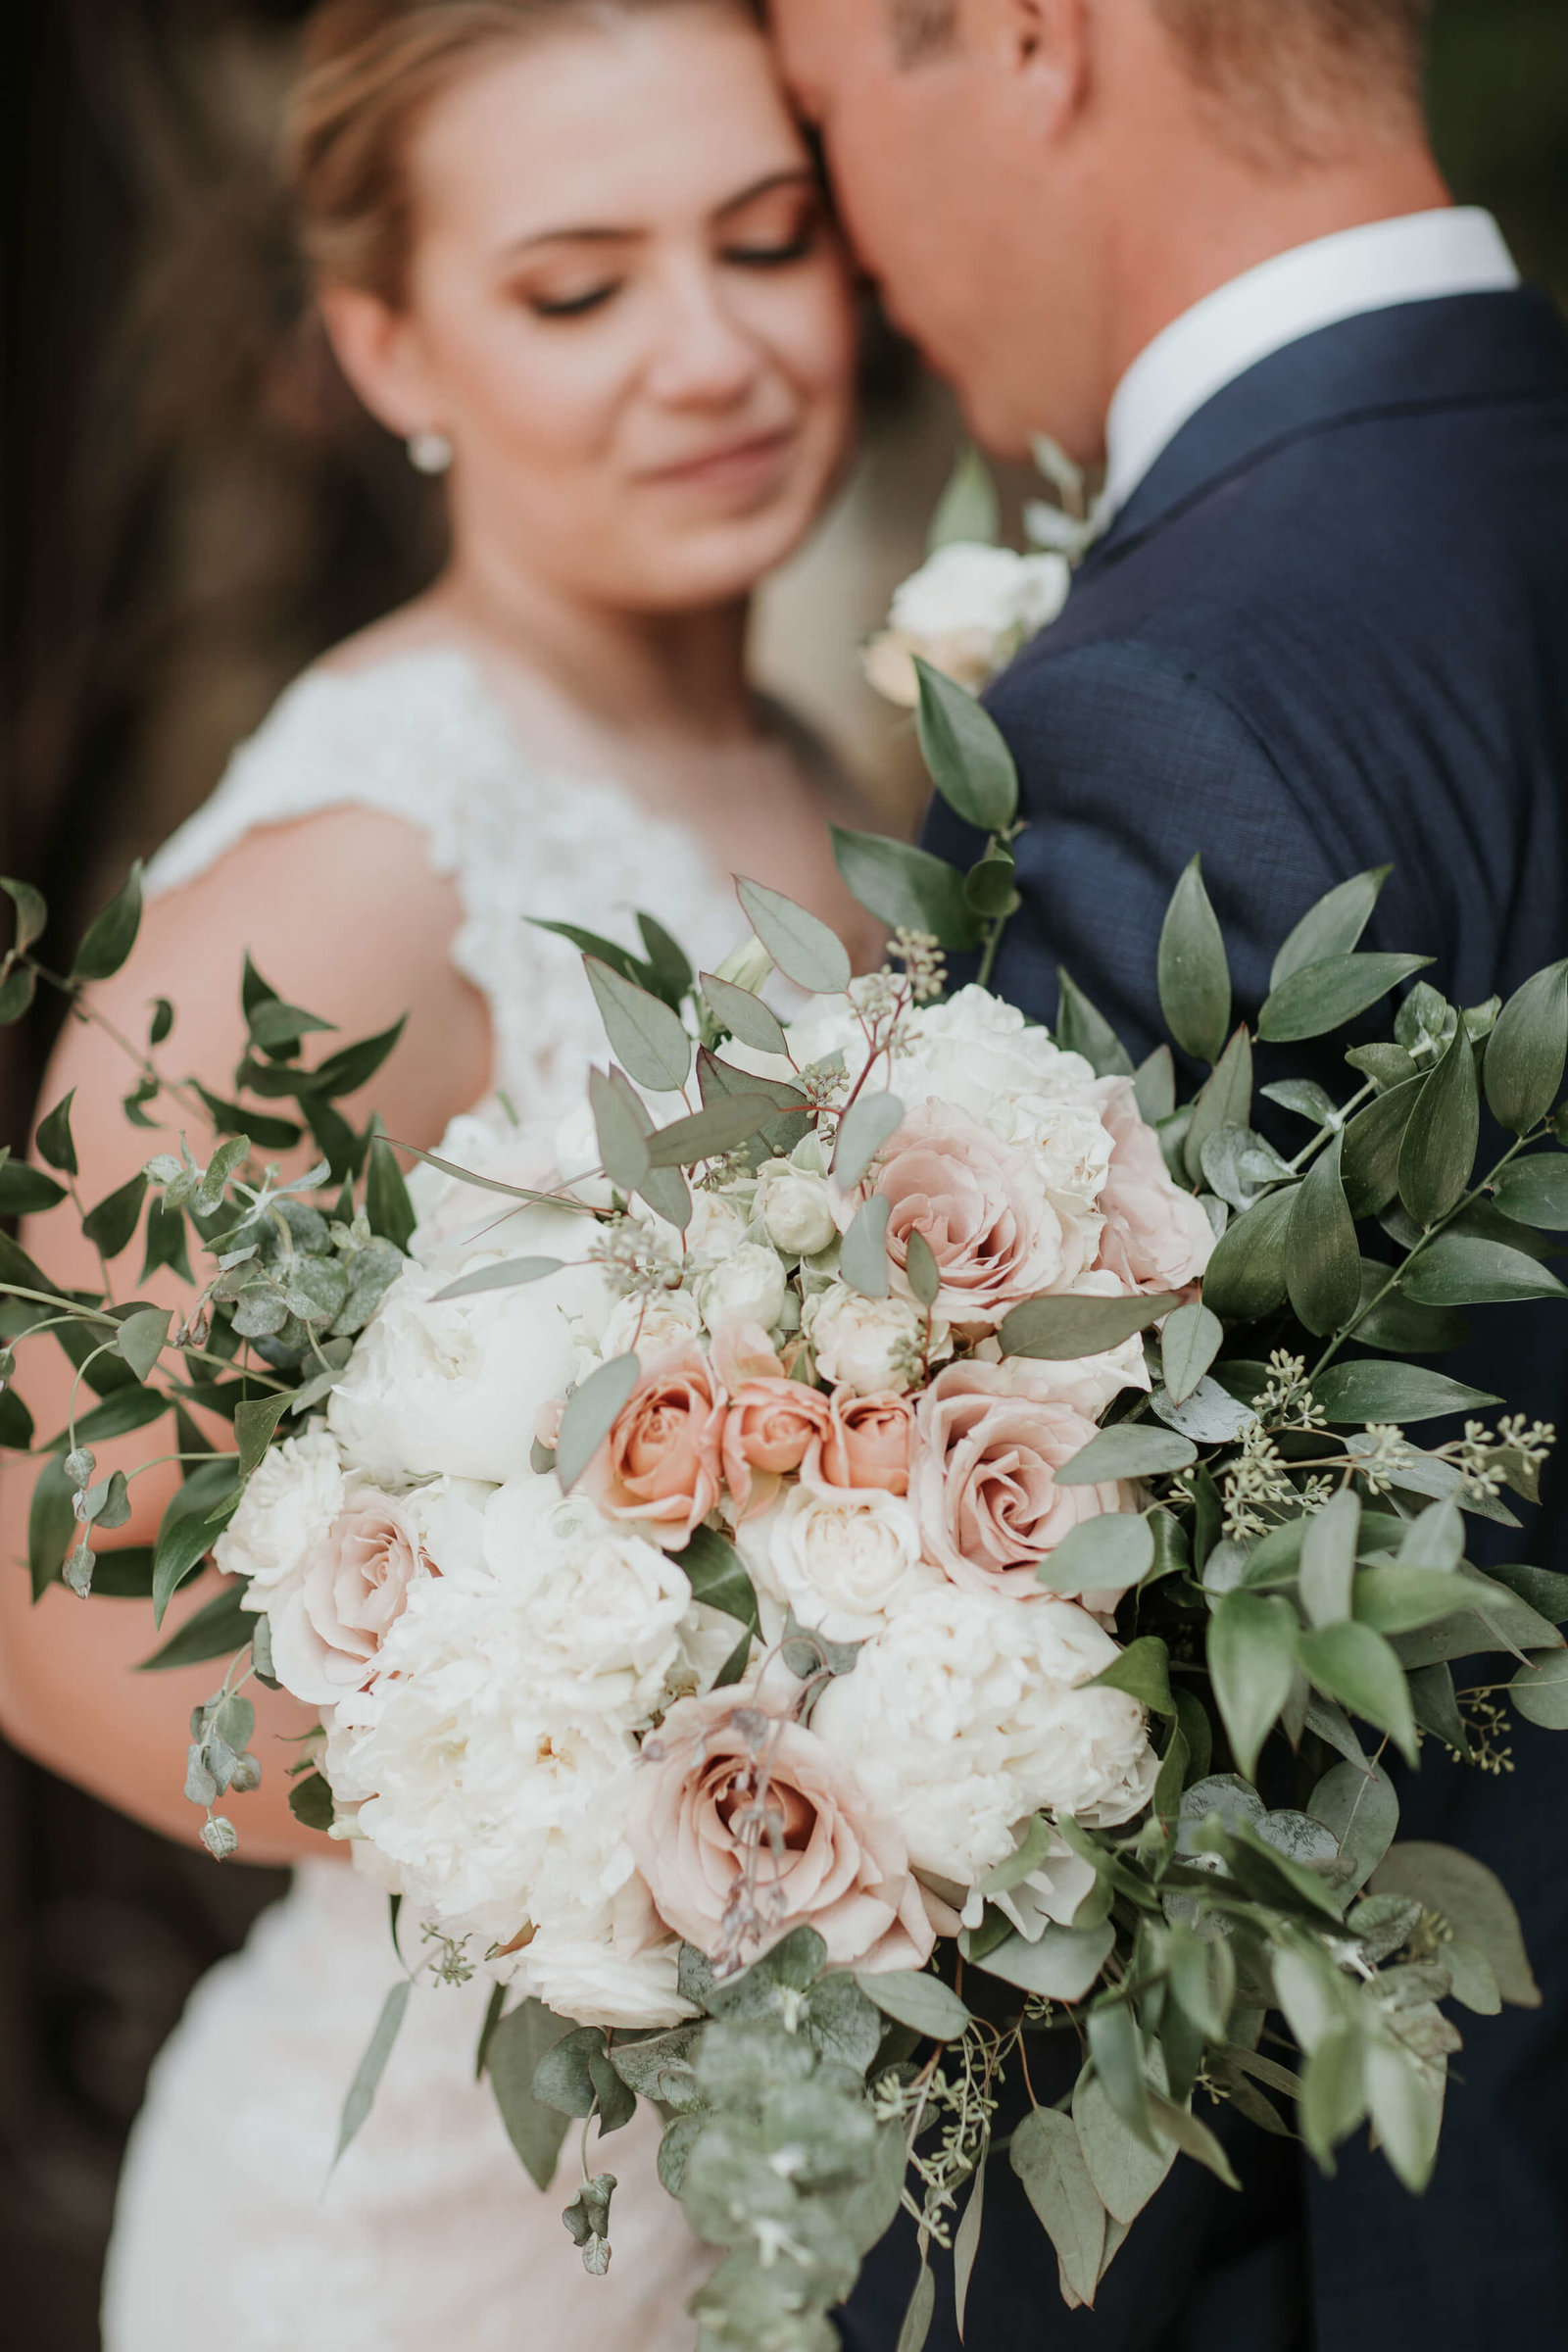 Swiftwater-Cellars-wedding-Lauren-Peter-June-22-by-adina-preston-photography-148